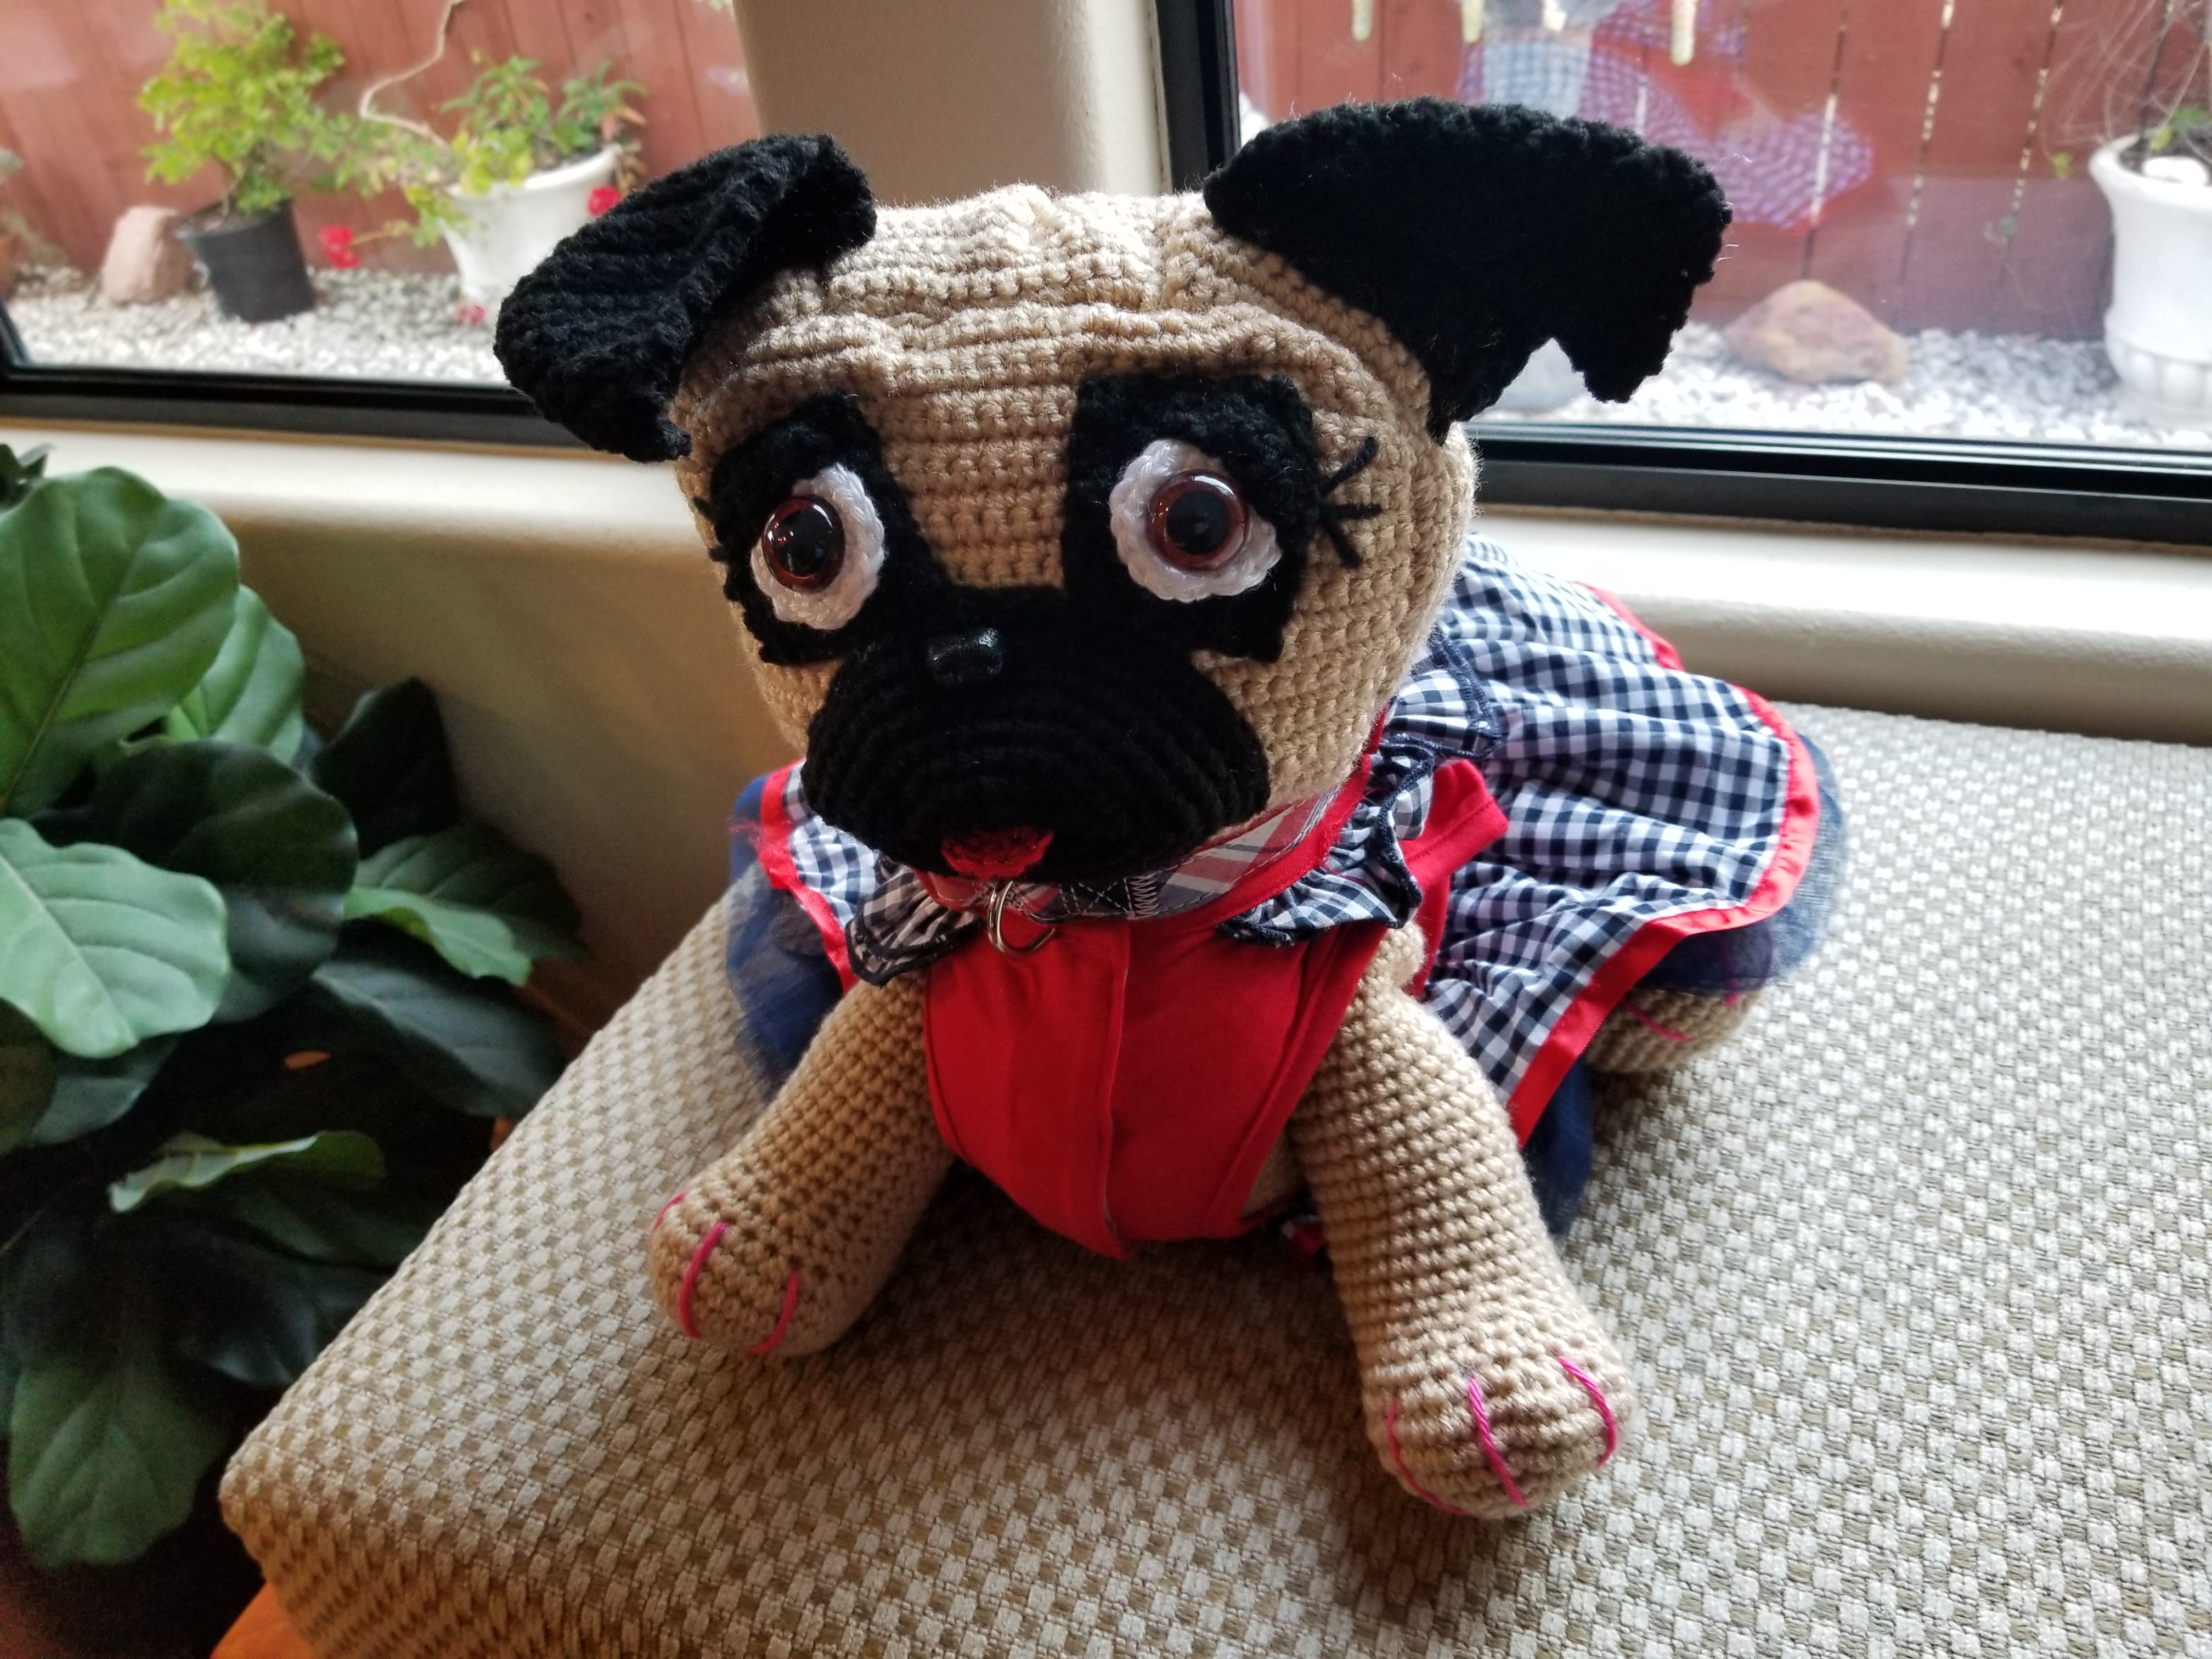 Pug Dog Crochet Pattern Lots Of Ideas Video Tutorial | 3024x4032